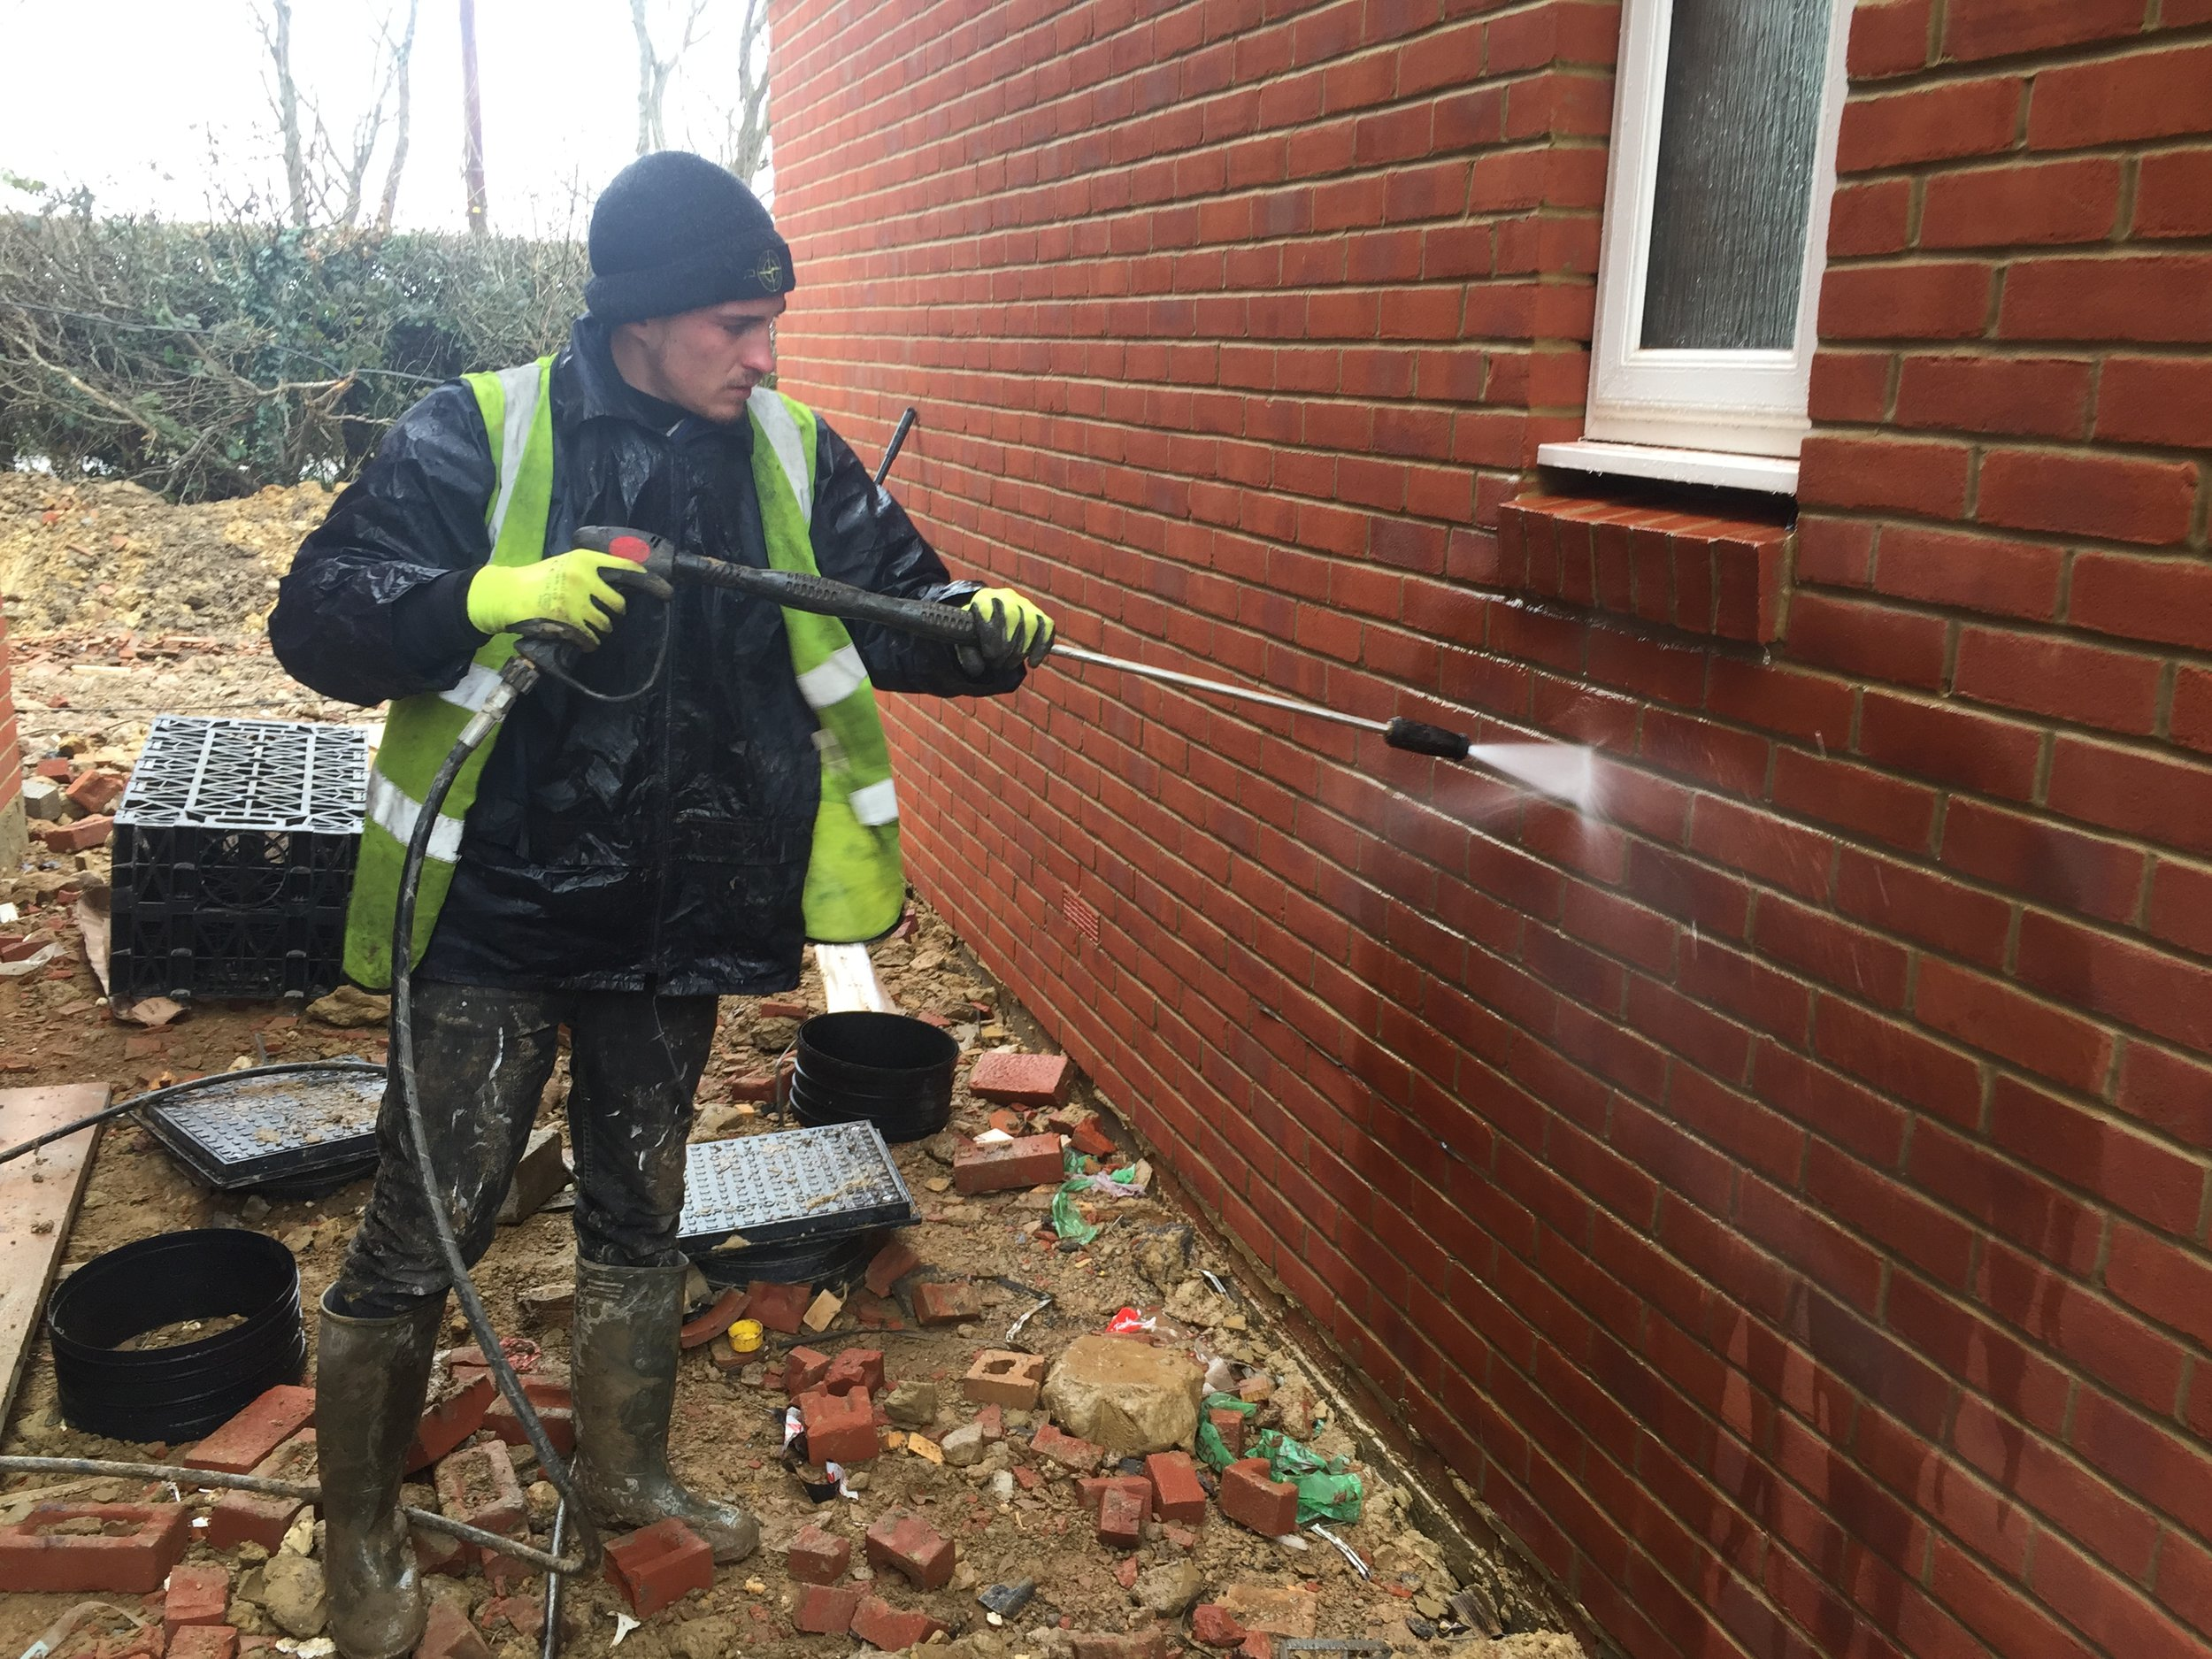 brick work cleaning expert - We have years worth of experiance in cleaning new brick work removing cement stains and cement snots from the construction period. We use a varioty of chemicals on stain just to help loosen the stains before pressure washing.